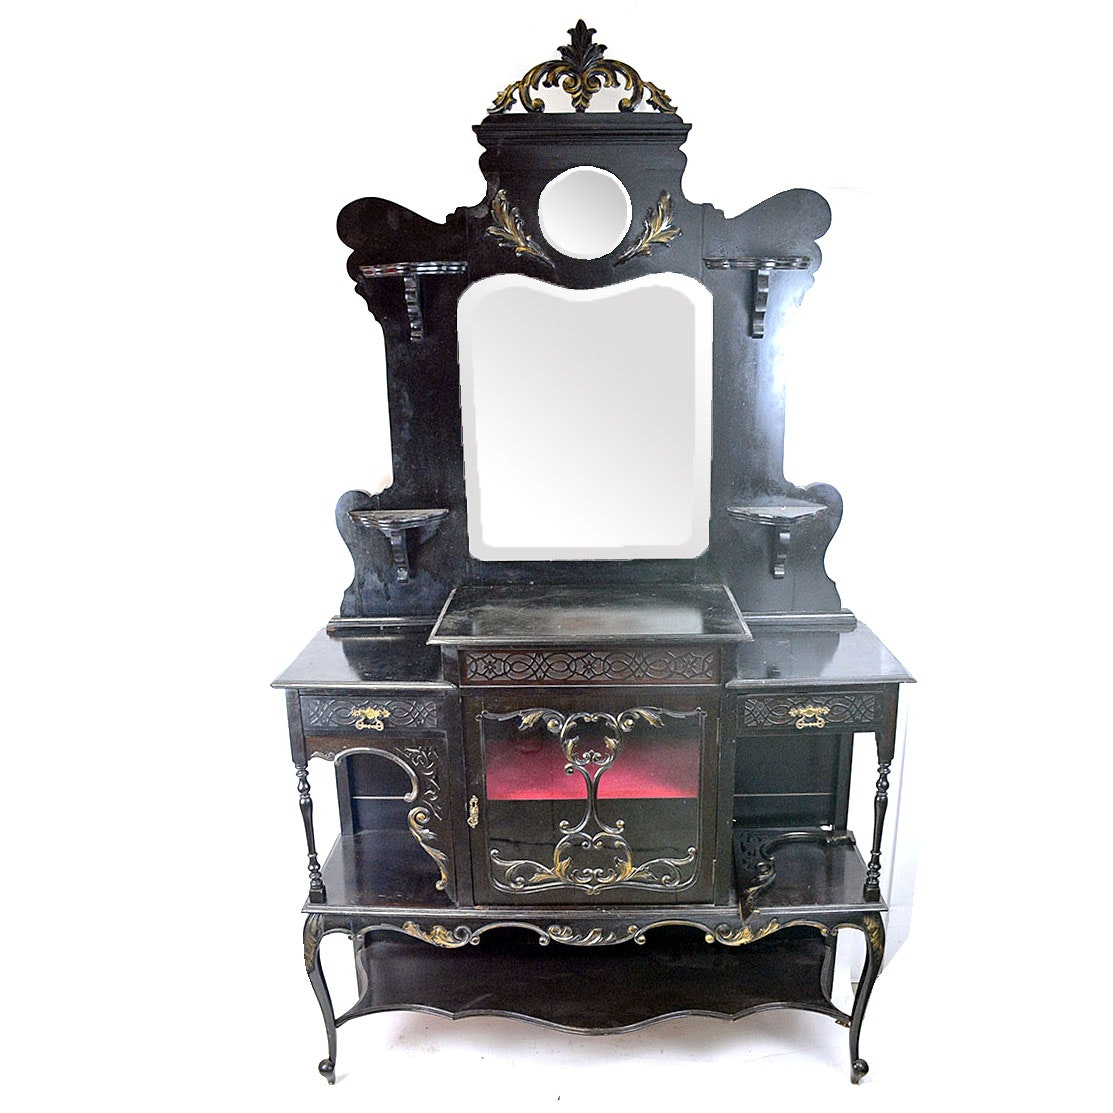 Antique Rococo Serving Table with Mirrored Mantel